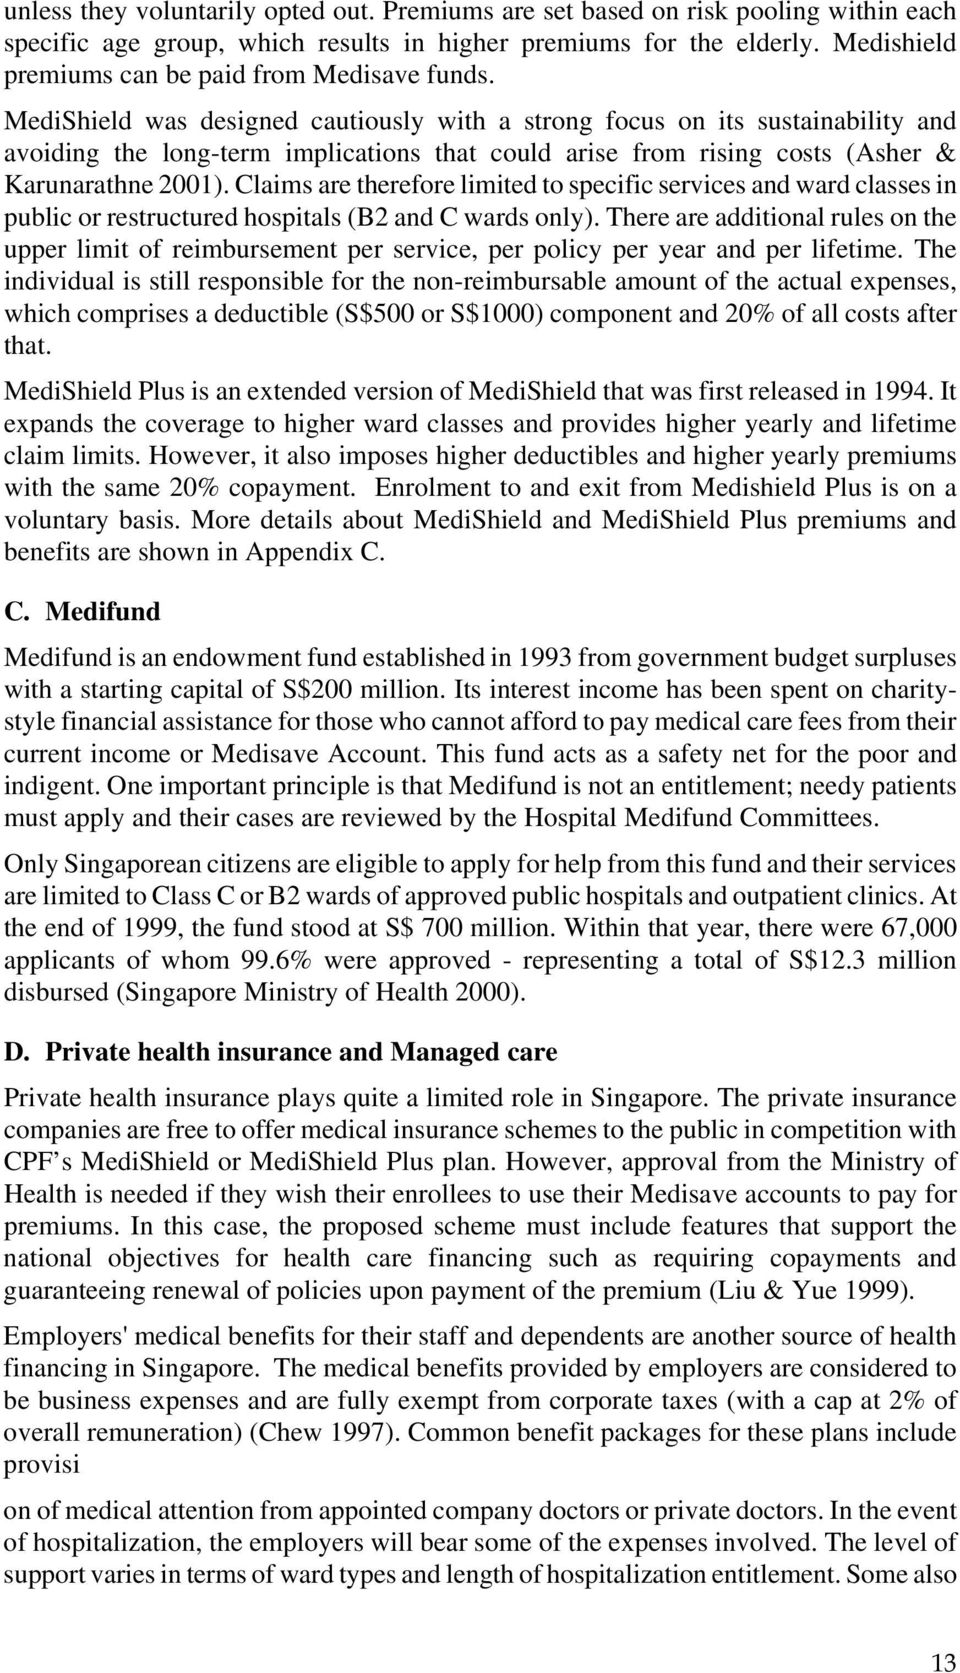 MediShield was designed cautiously with a strong focus on its sustainability and avoiding the long-term implications that could arise from rising costs (Asher & Karunarathne 2001).